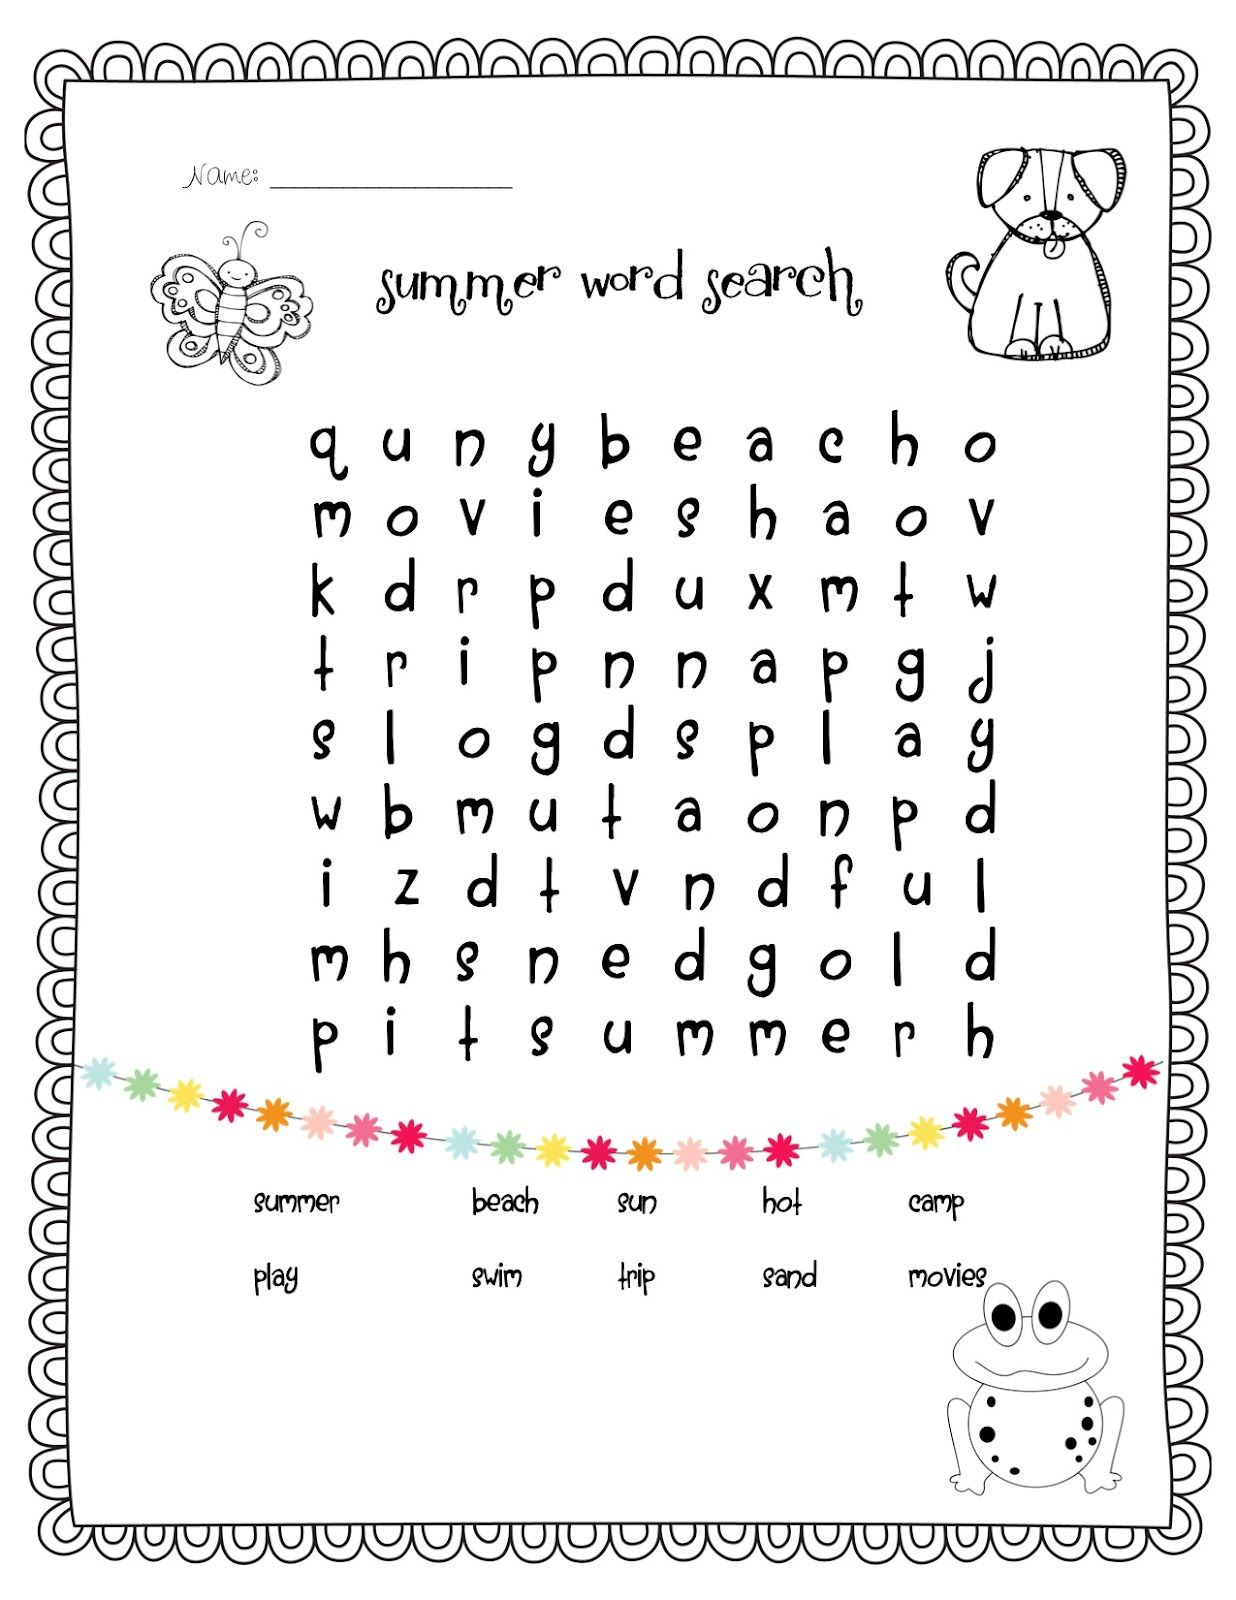 Worksheet Word Search For Second Graders 1000 images about puzzels on pinterest coming soon number puzzles and summer words